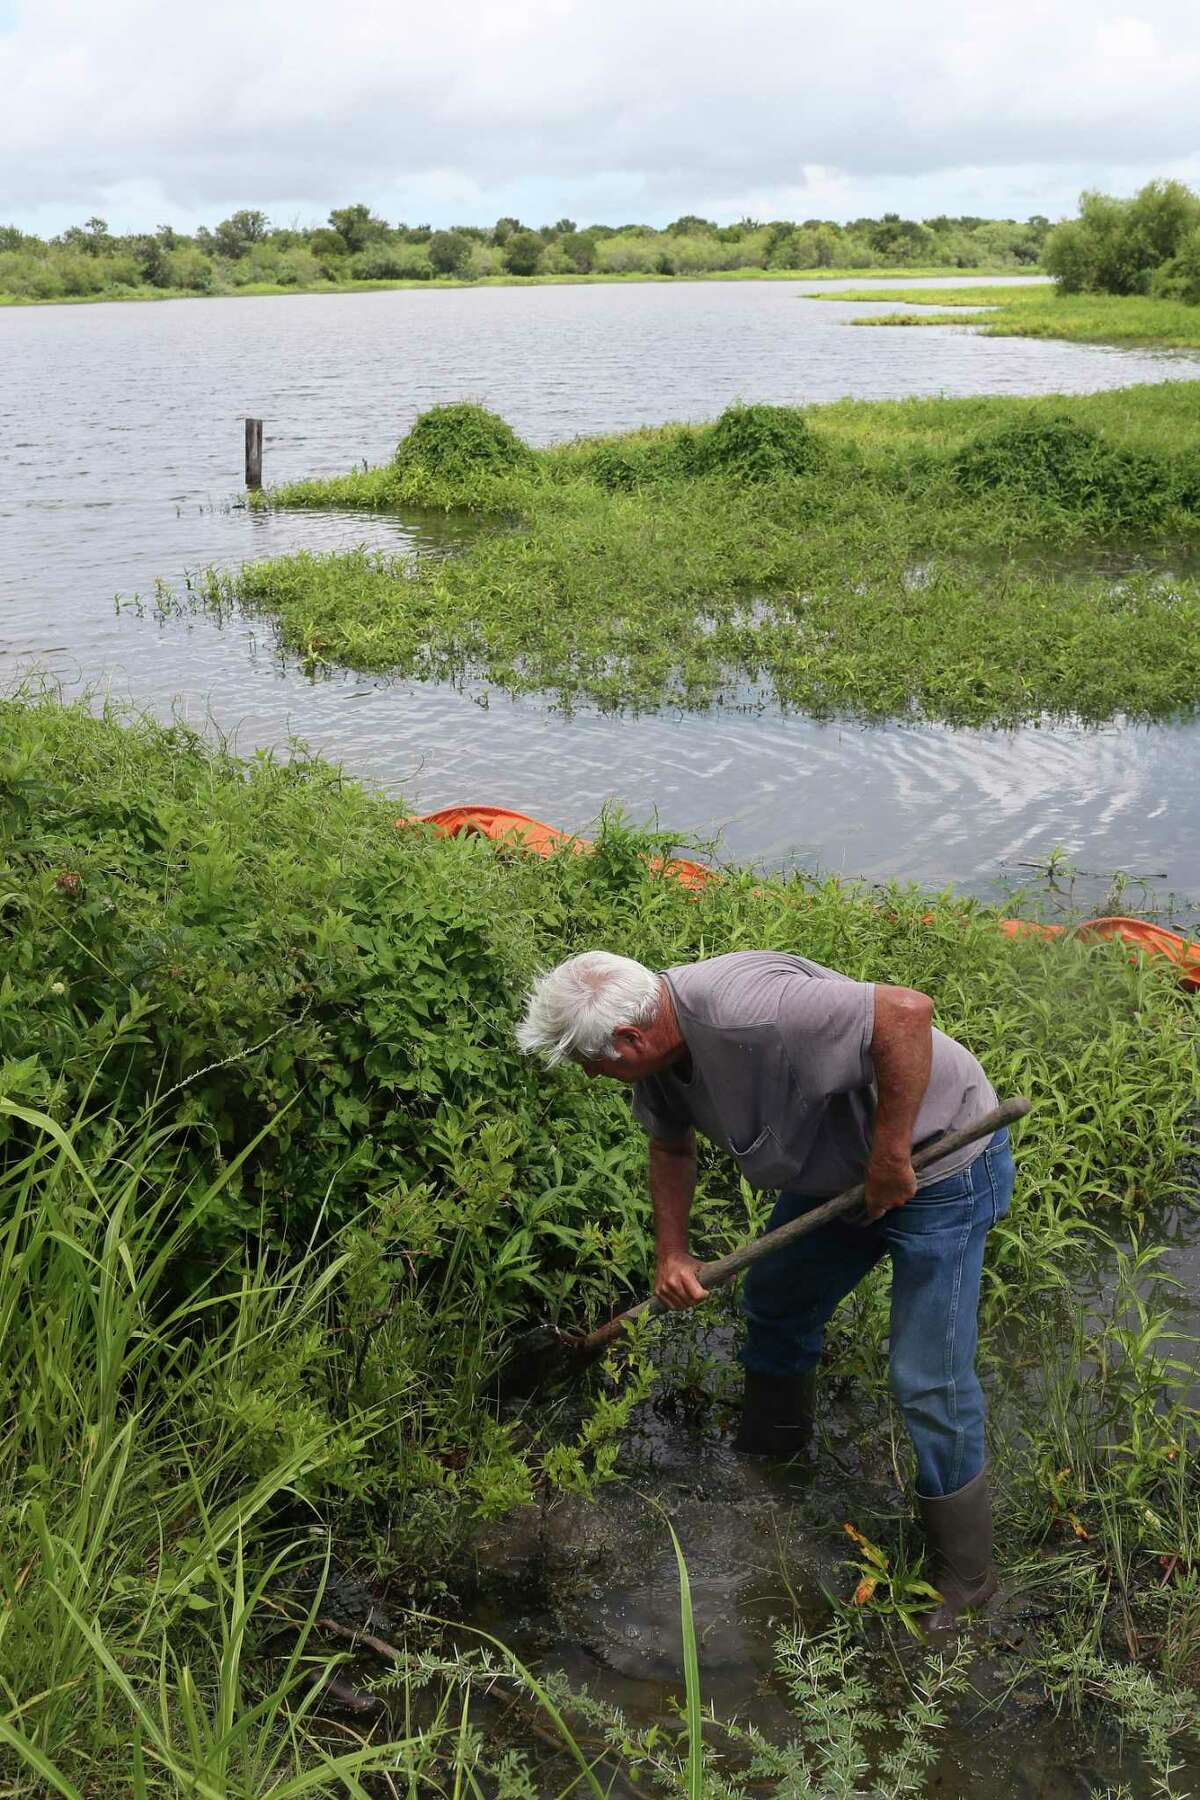 Ronnie Hamrick, 63, searches for plastics pellets in the mud of Cox Creek in Point Comfort across the bay from Port Lavaca, Texas, Wednesday, June 28, 2017.